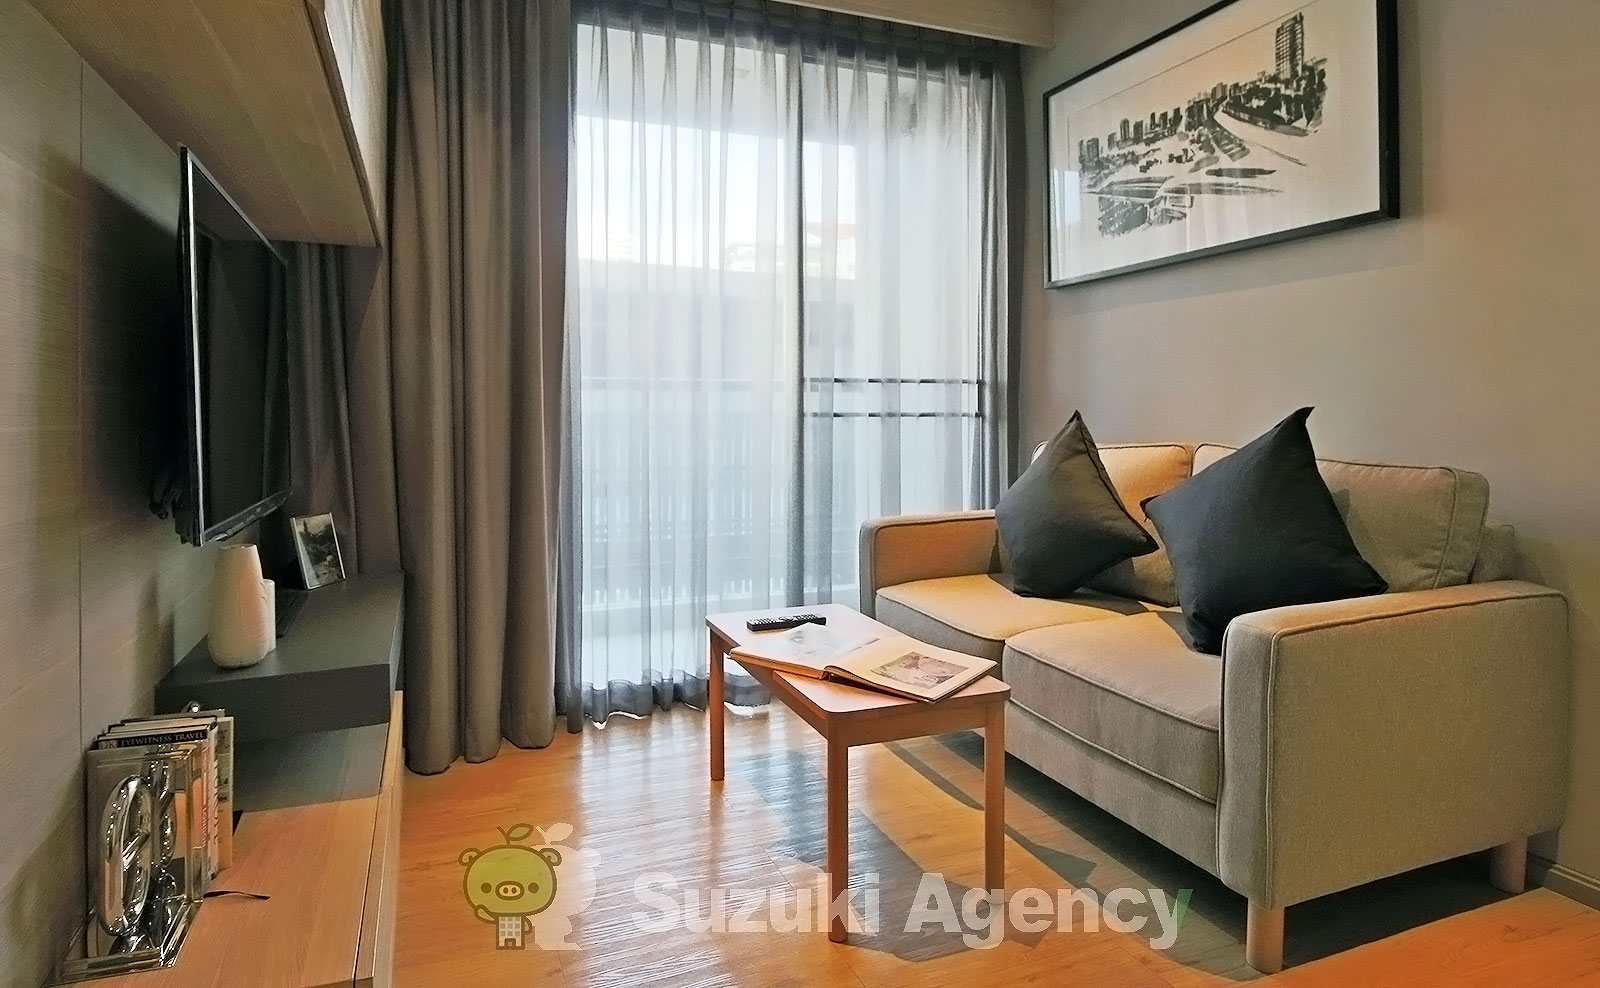 VOQUE Serviced Residence:2Bed Room Photos No.1